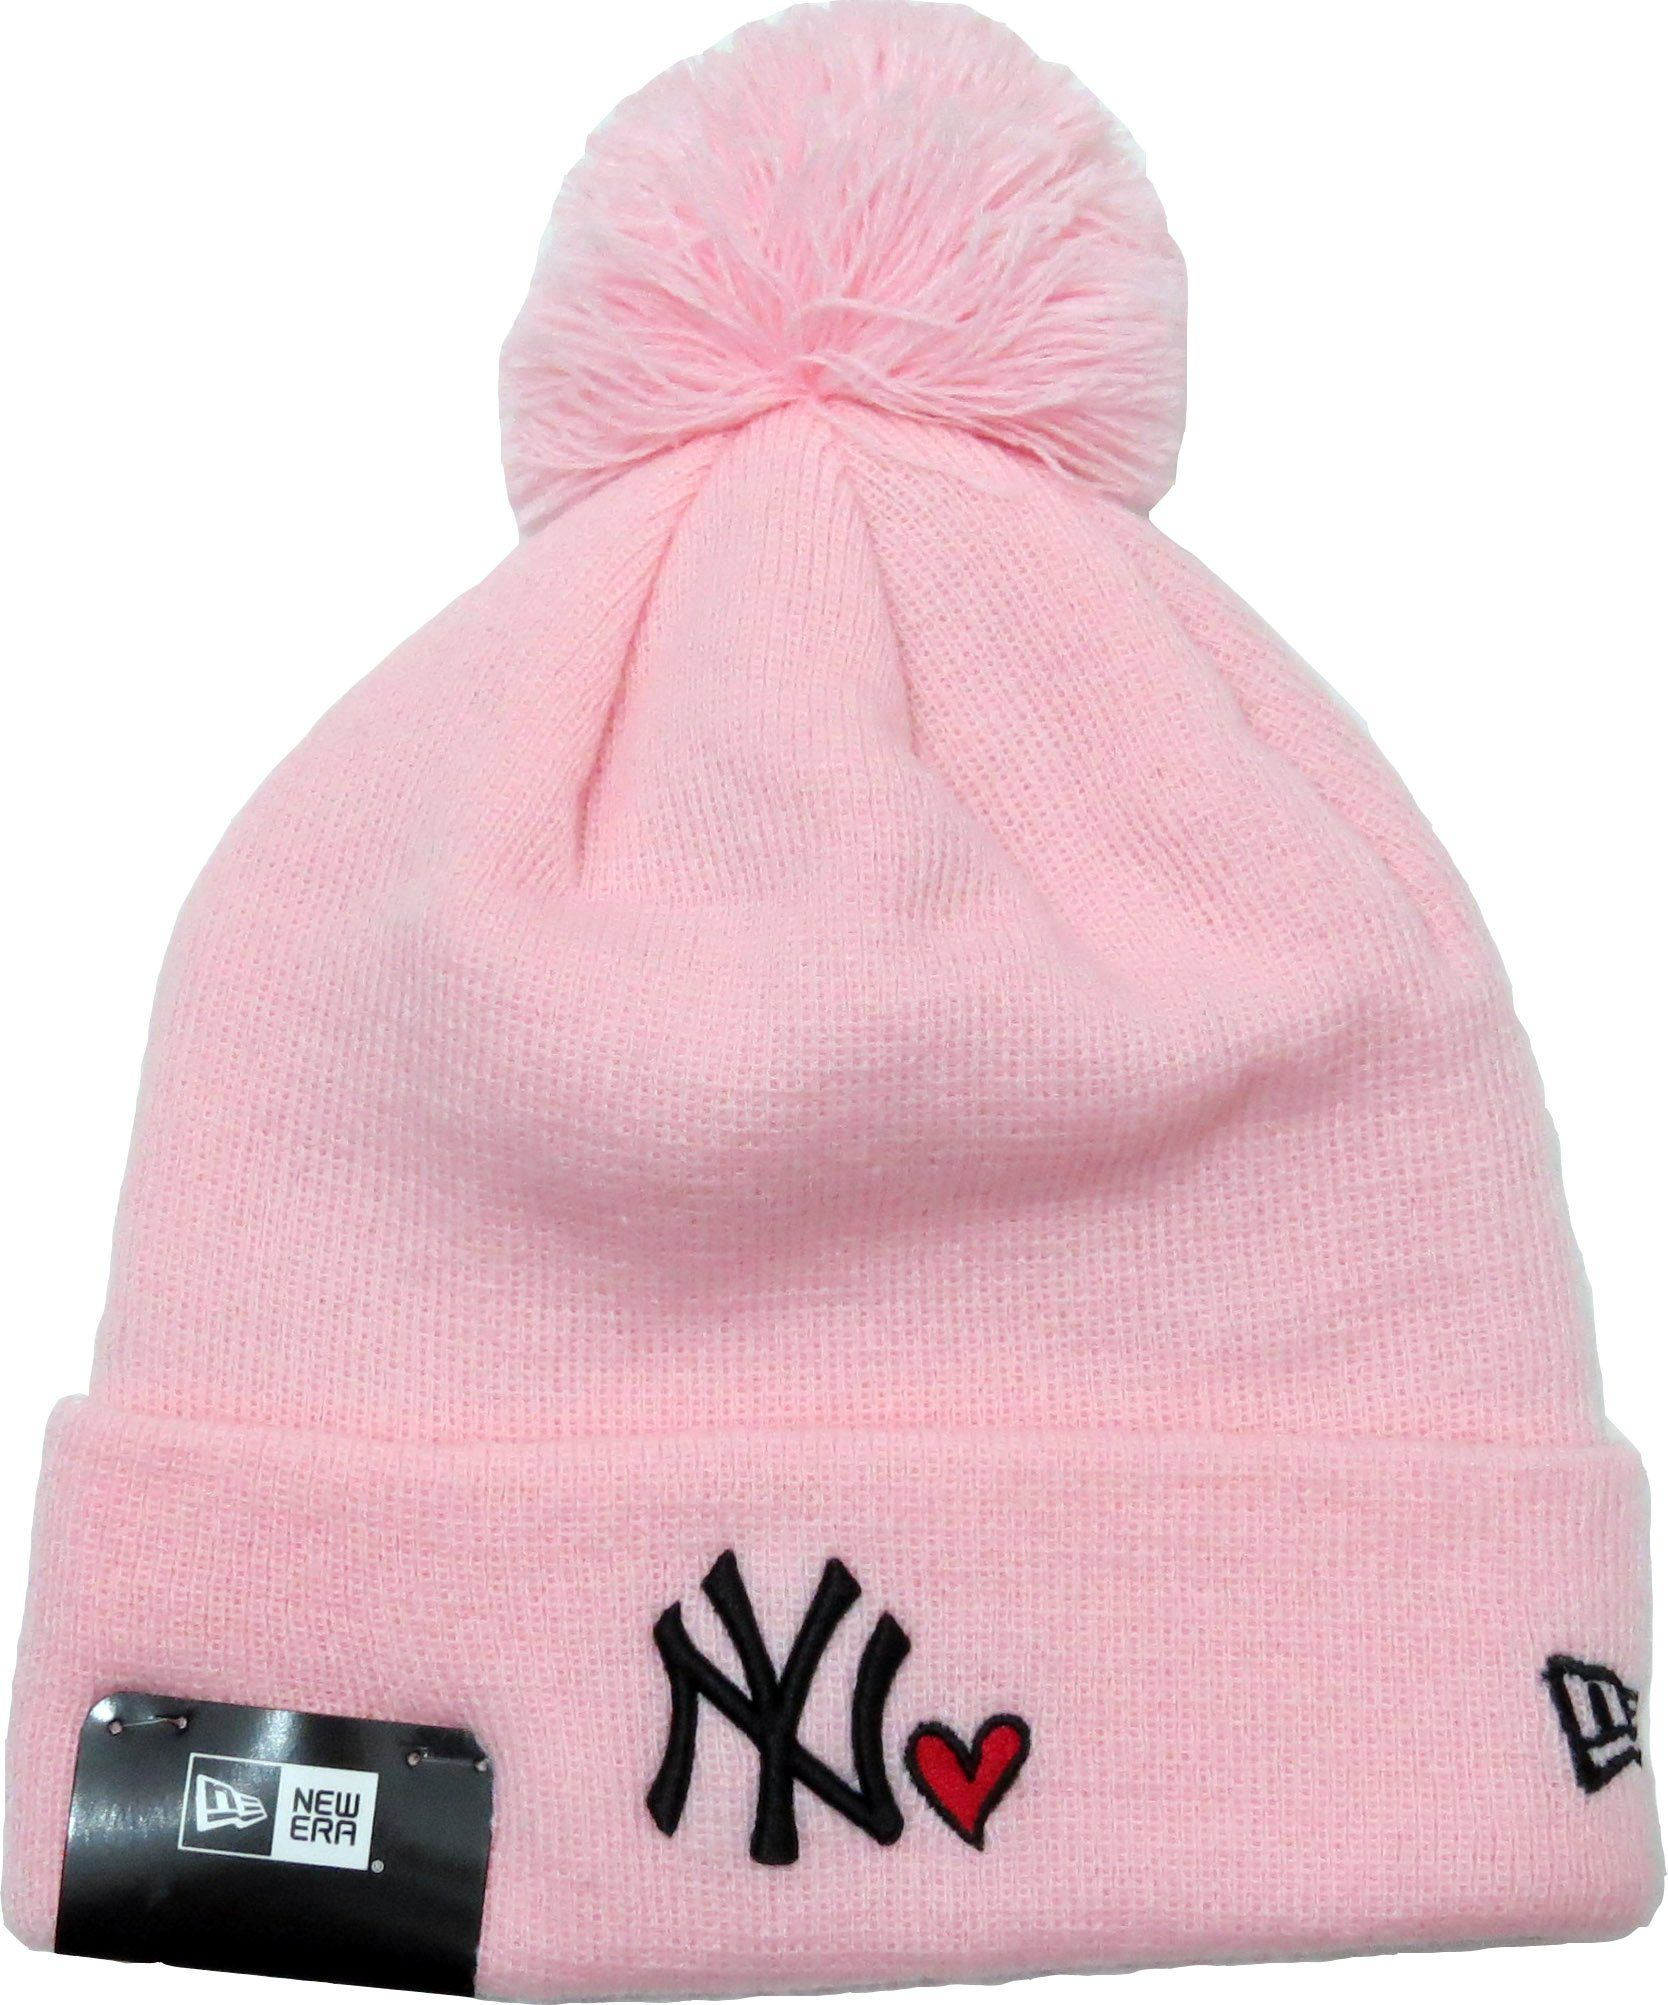 33360195b27 NY Yankees New Era Heart Knit Pink Bobble Hat – lovemycap